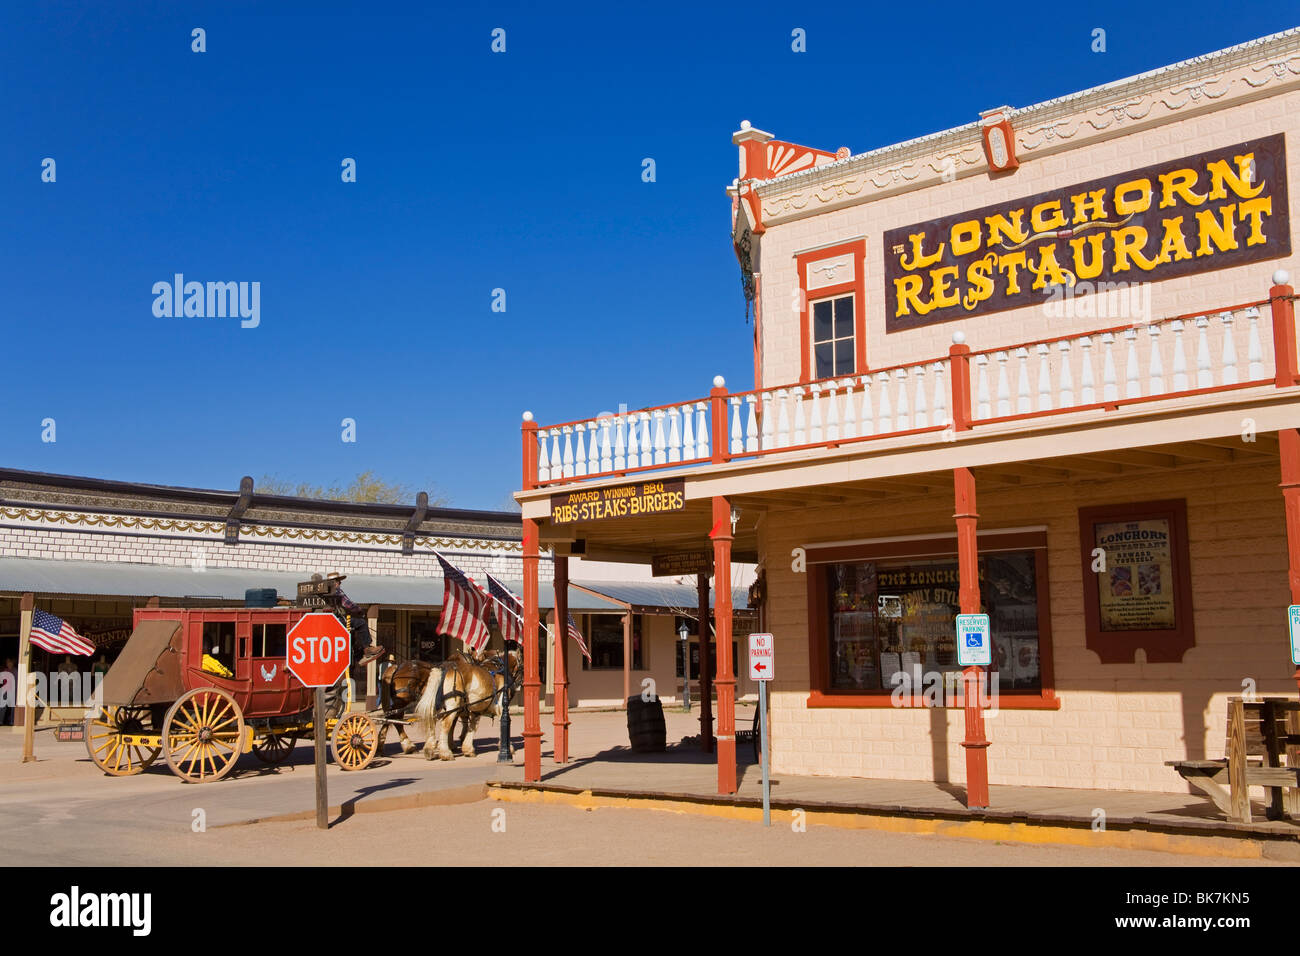 Longhorn Restaurant, Tombstone, Cochise County, Arizona, United States of America, North America - Stock Image